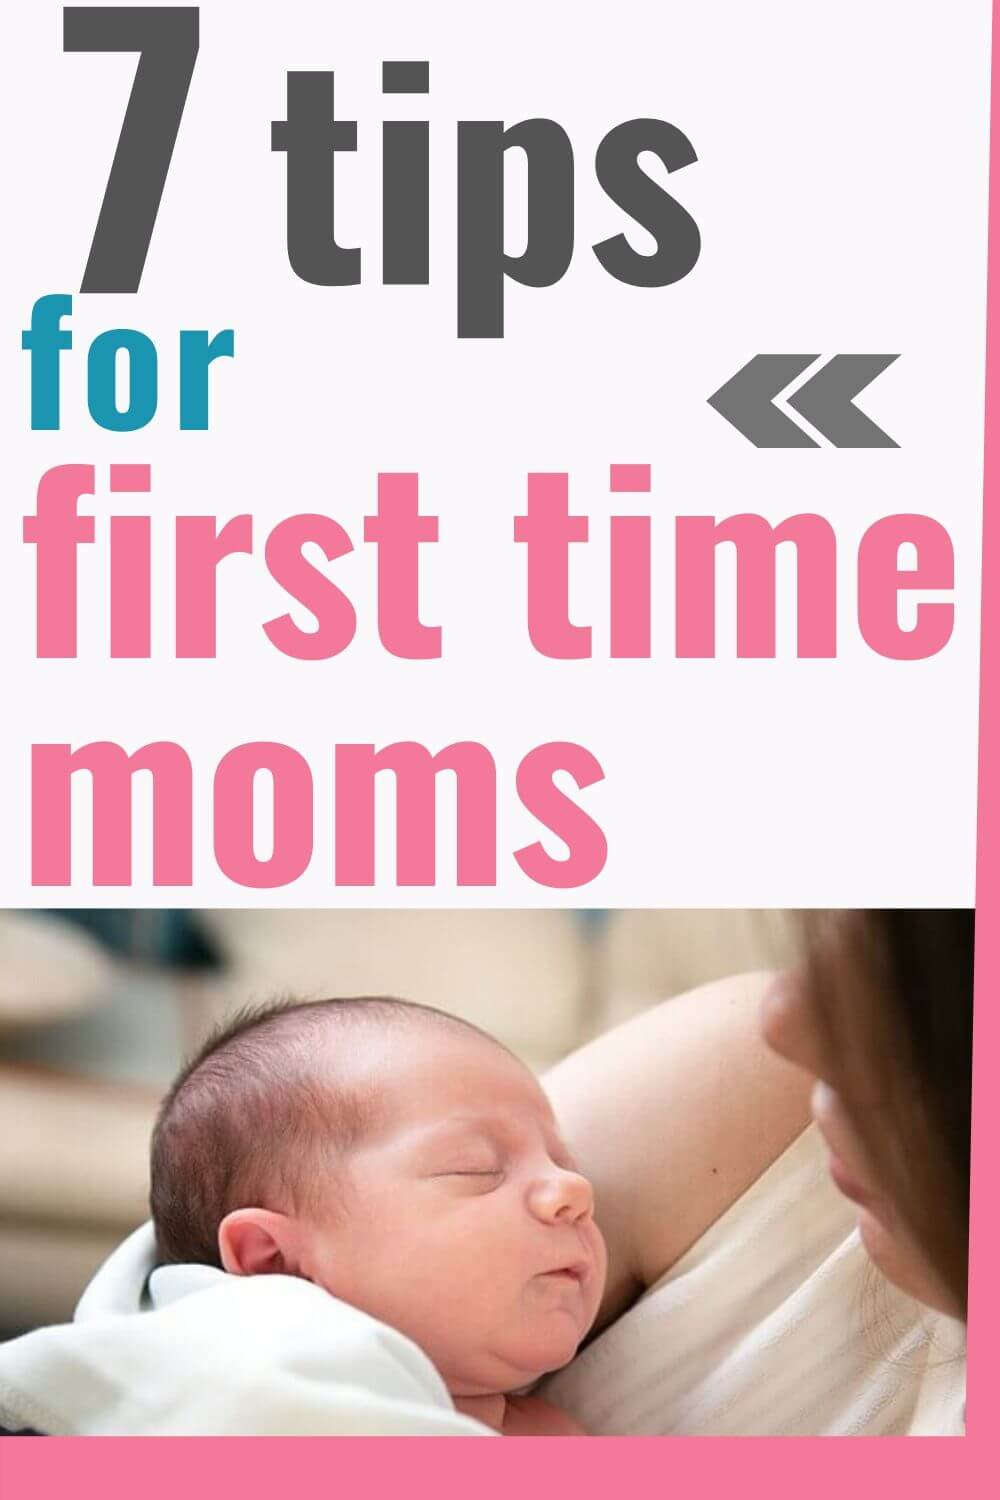 First Time Moms